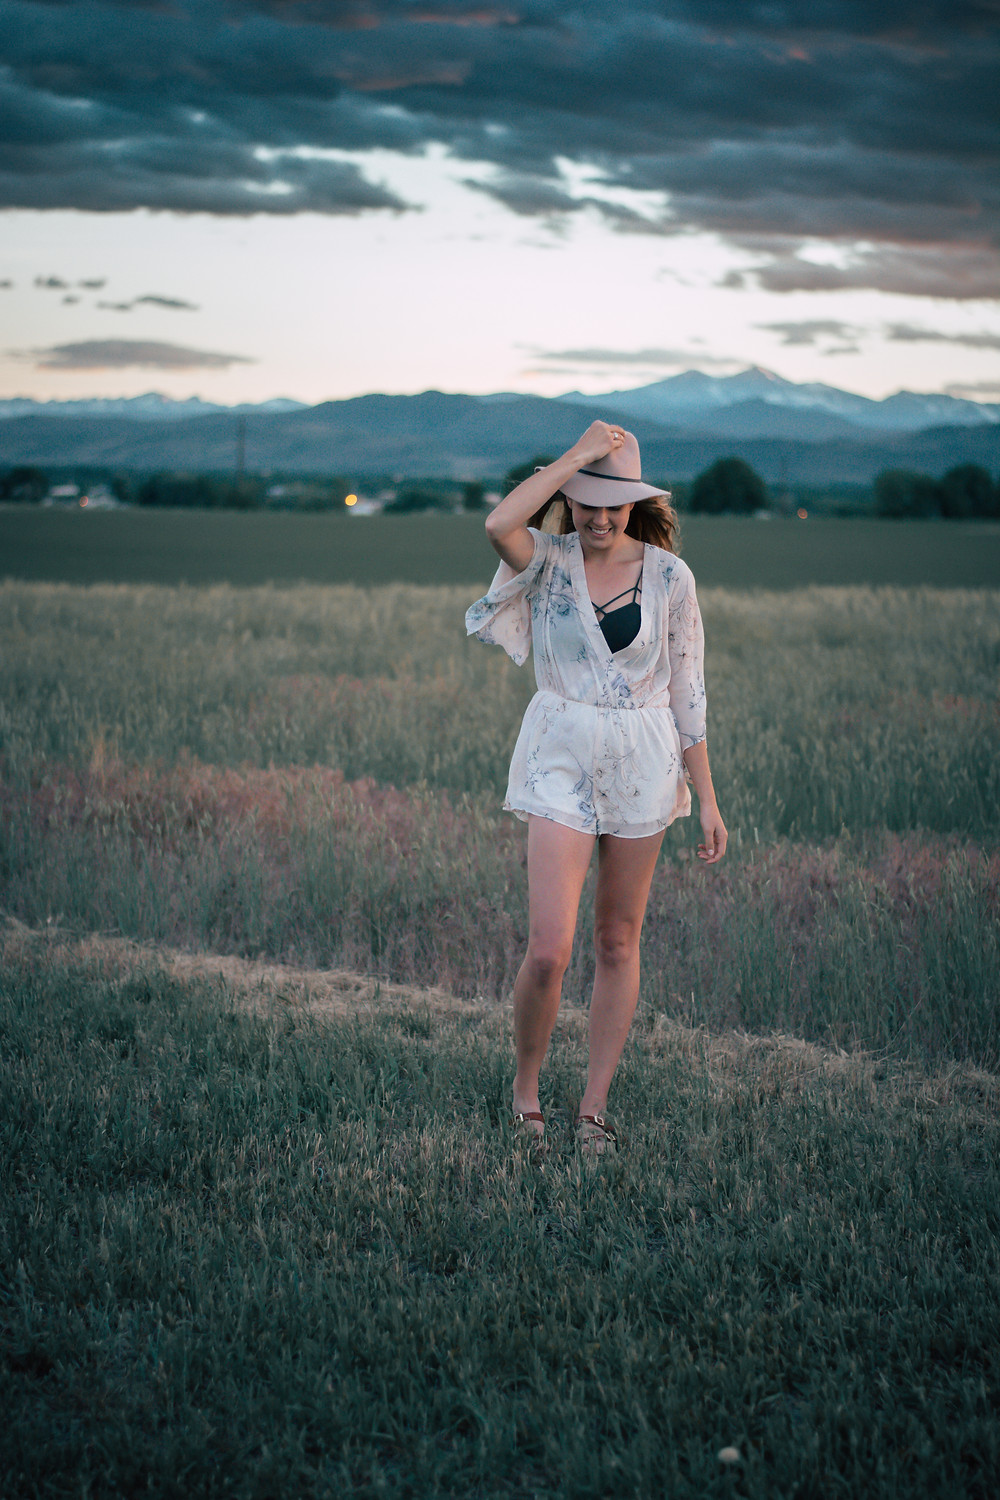 Holly Canon Travel and Lifestyle Blog To Live Free Wyoming Pink's Denver Colorado Boutique Romper Hat Mountains Field Photos